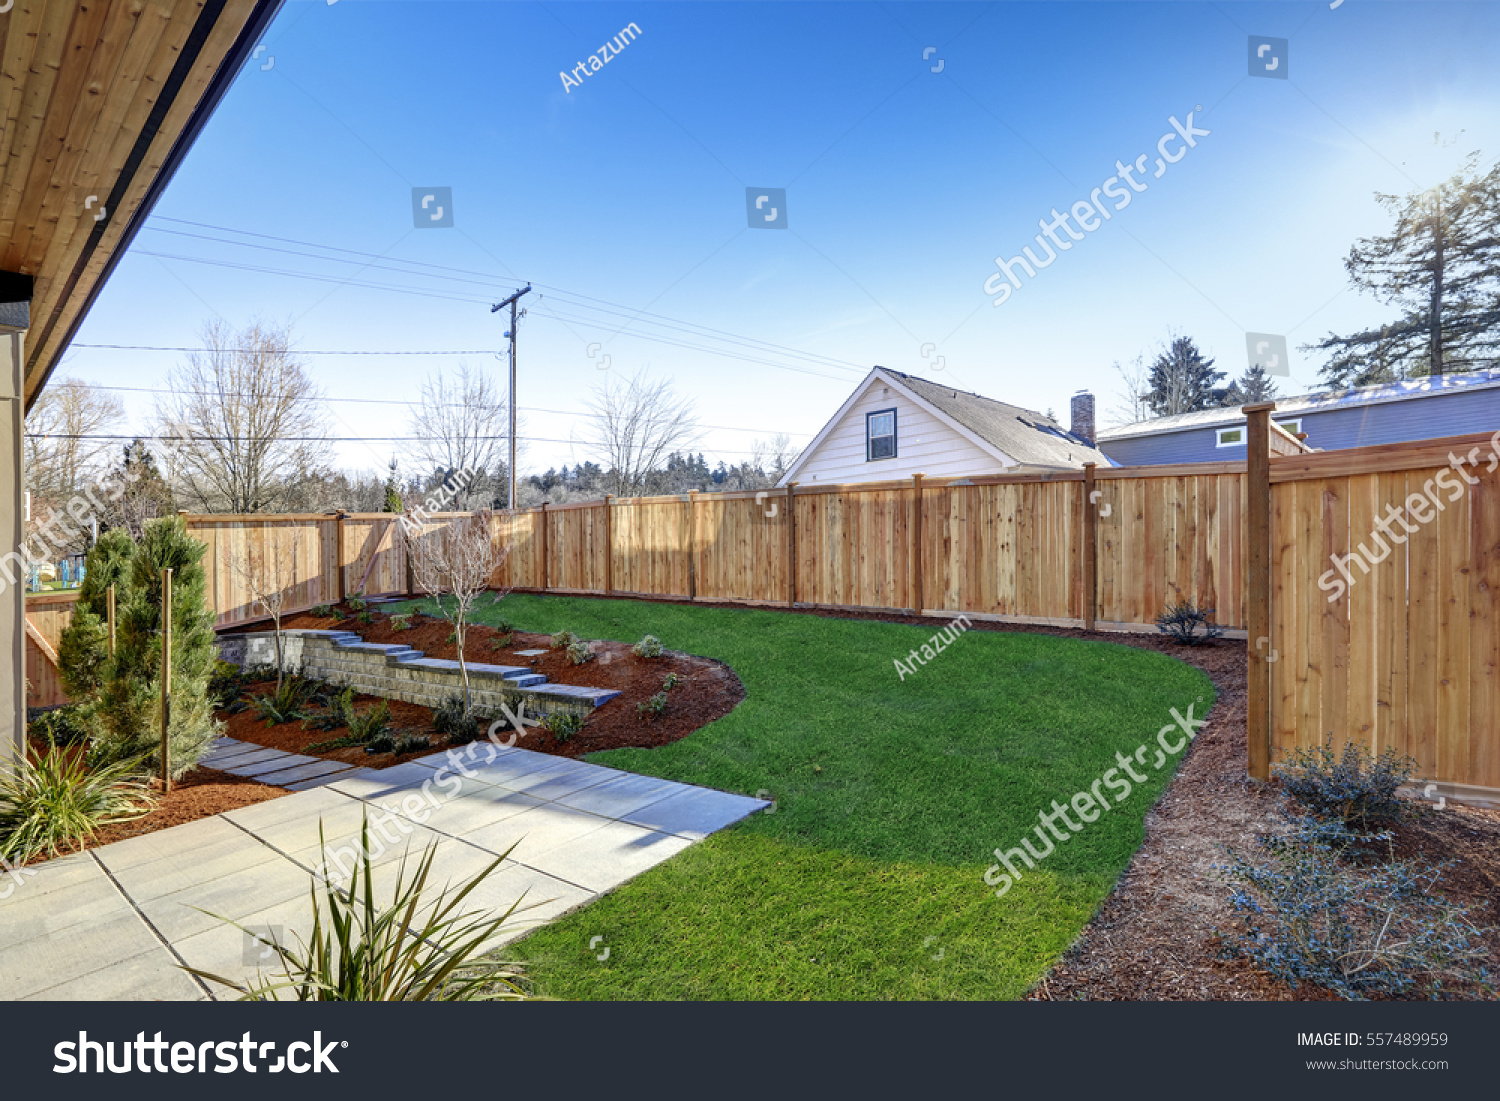 Sloped backyard surrounded by wooden fence stock photo for Luxury fences